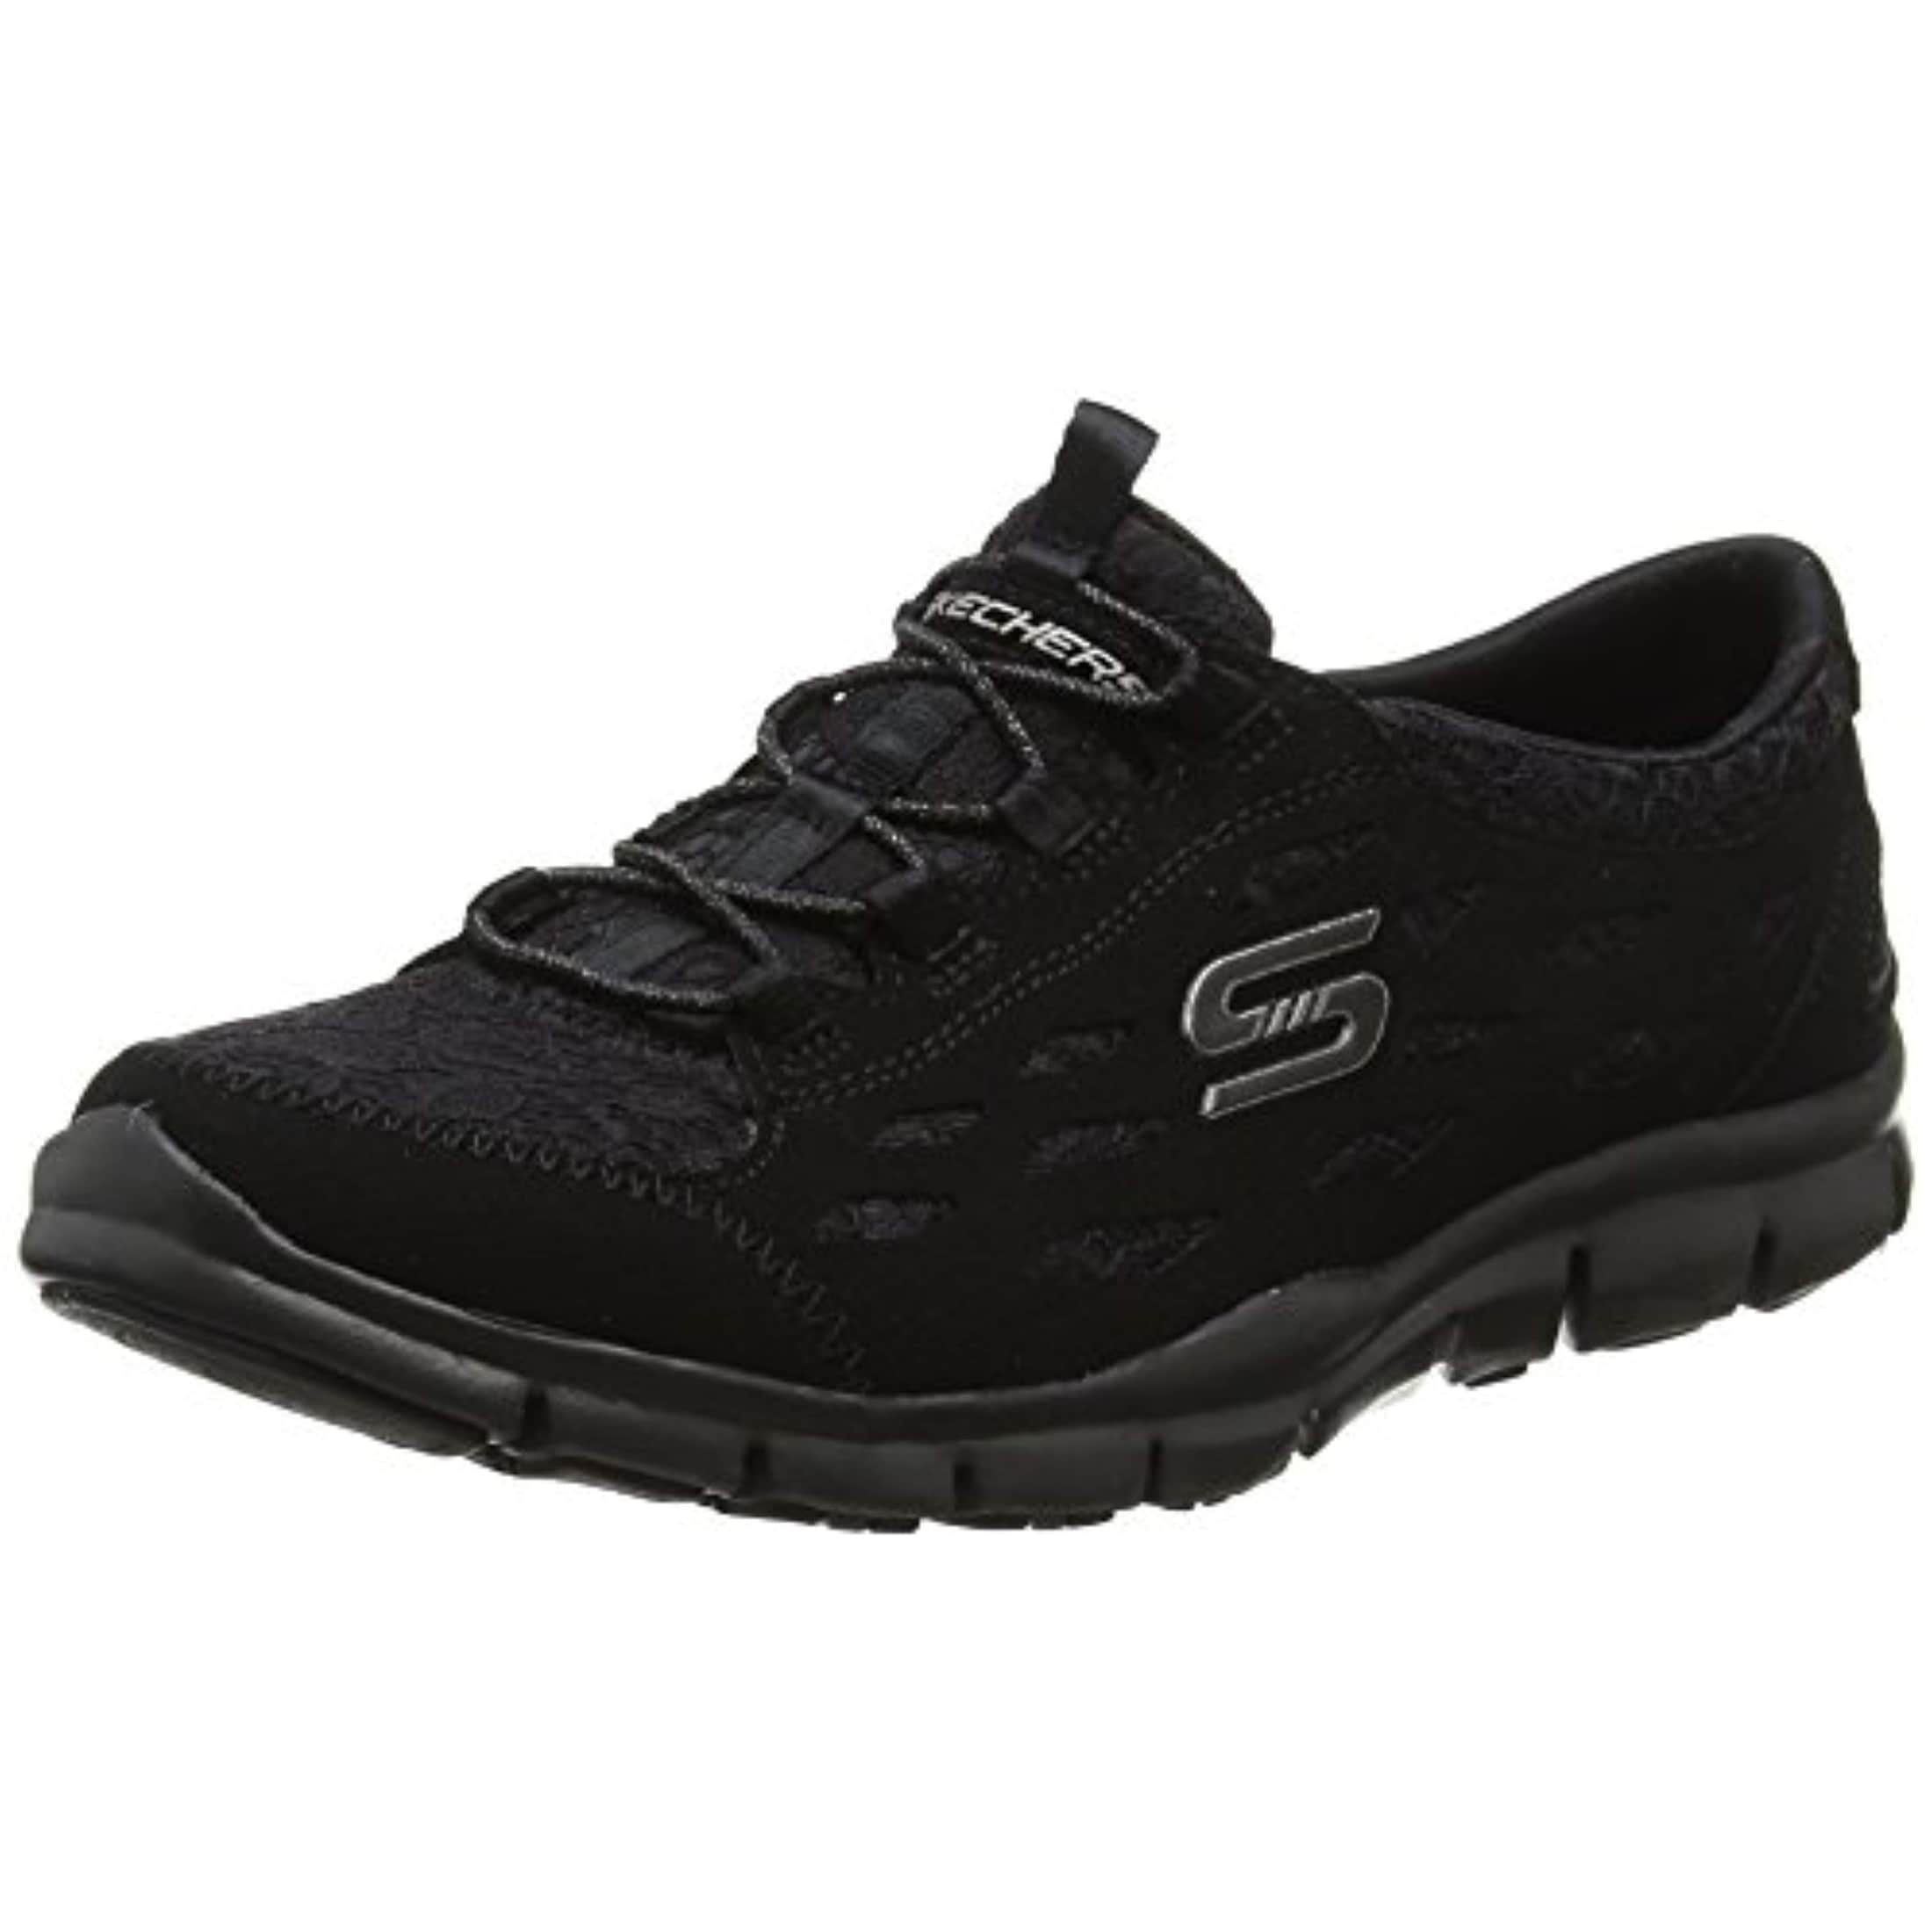 Skechers Women's Gratis-Chic Craze Slip